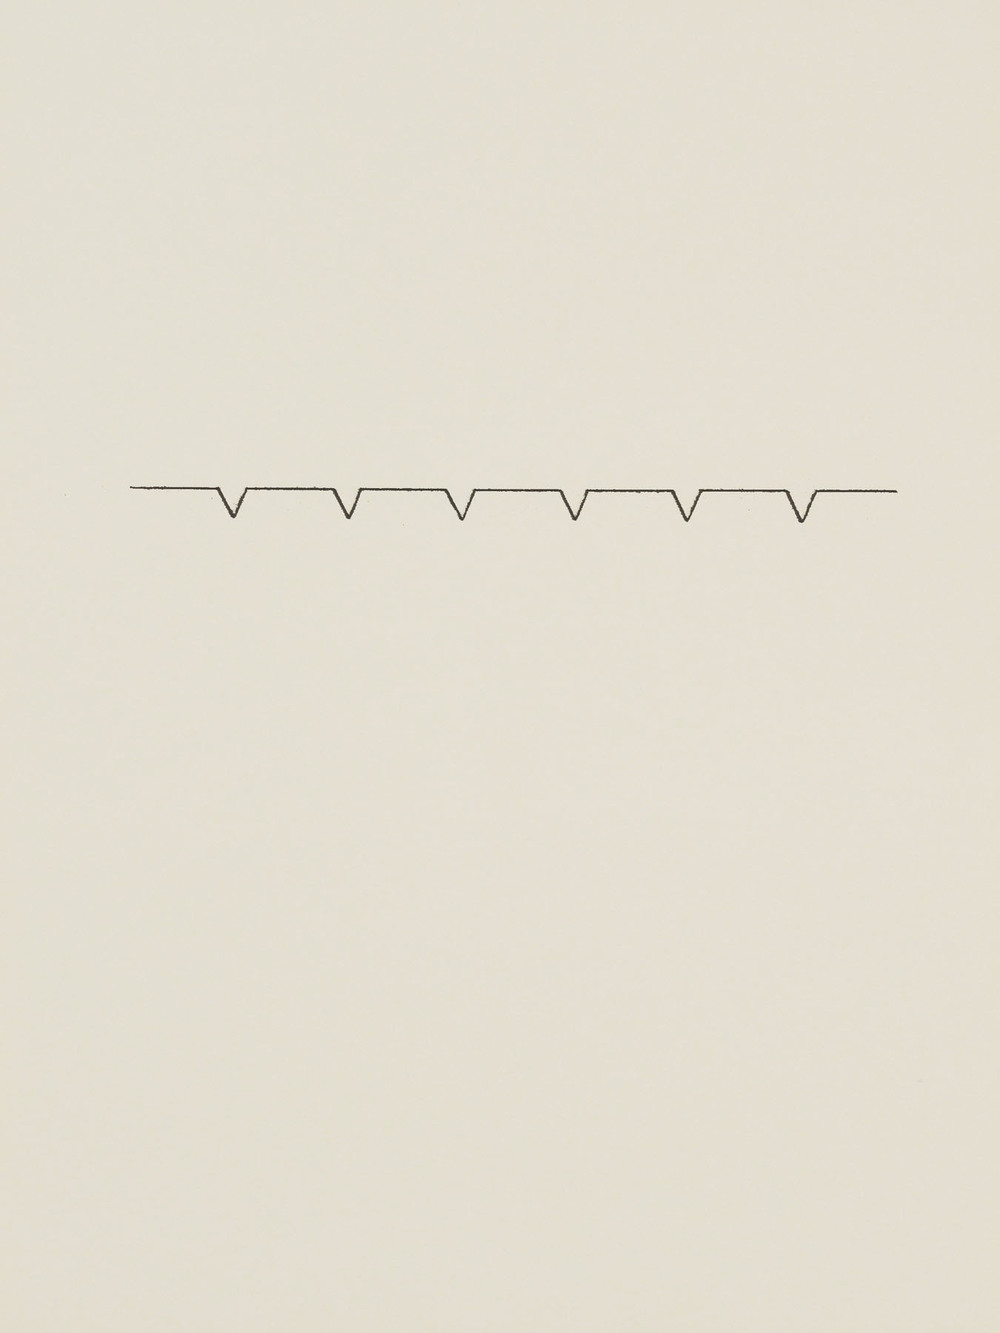 Richard Tuttle Untitled (Whitney Series #39) c. 1971 ink on paper 12 x 9 inches